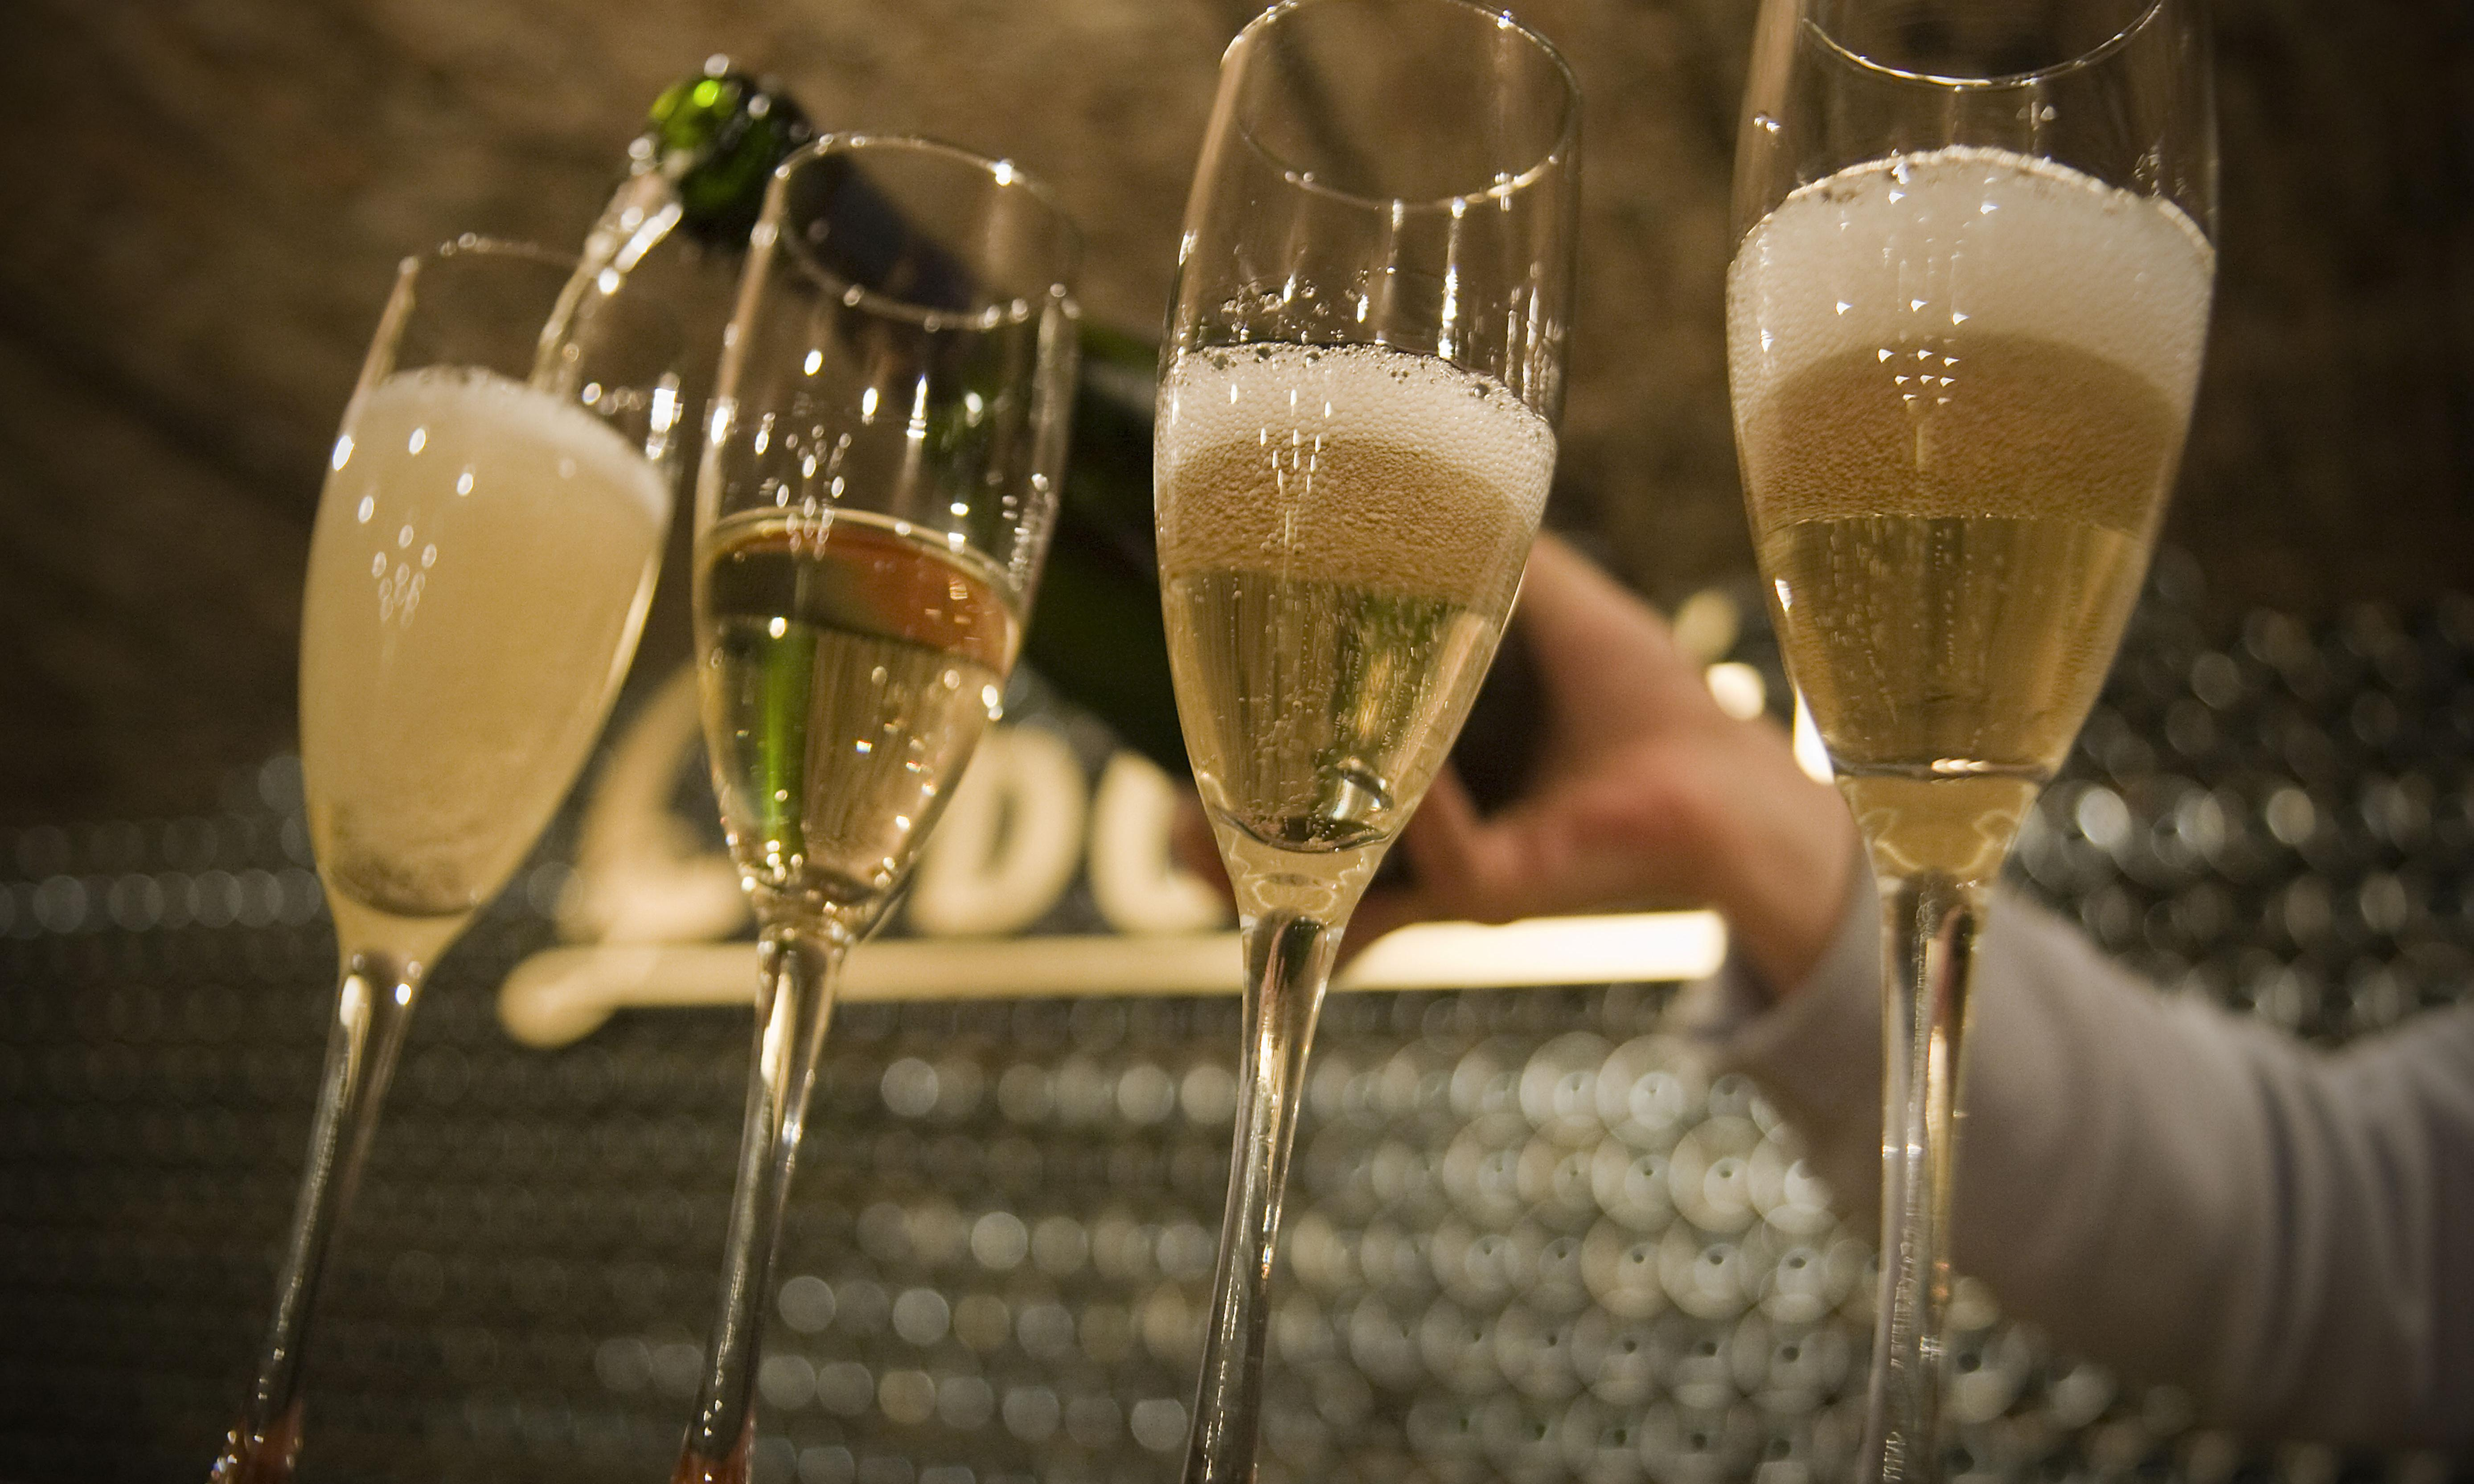 Co-op own-brand champagne better than Moët, says Which?